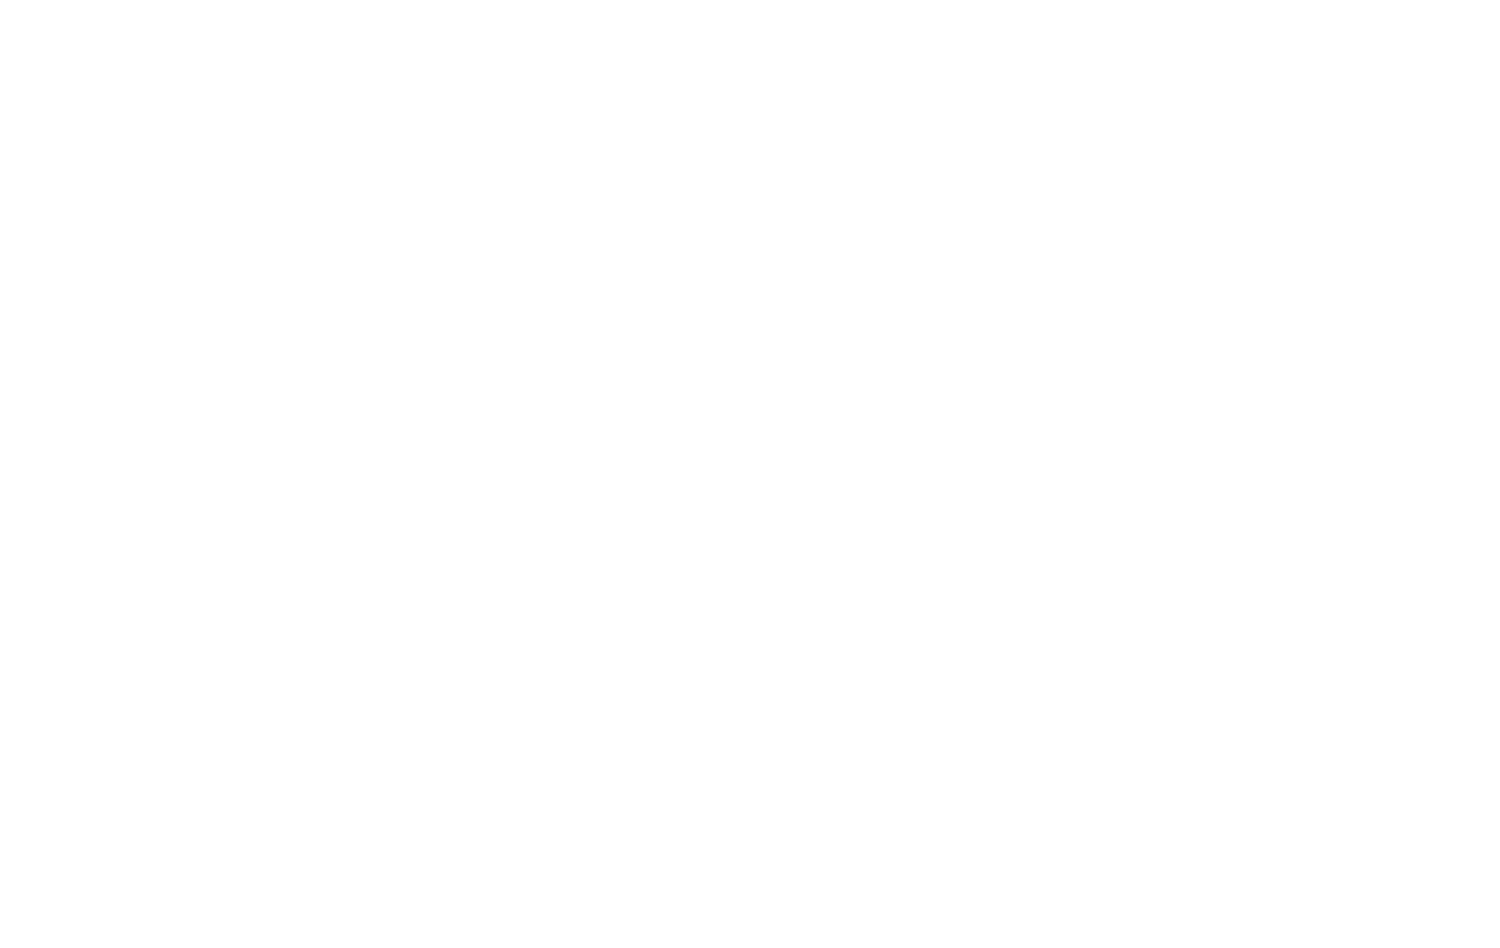 Accretive Value Group